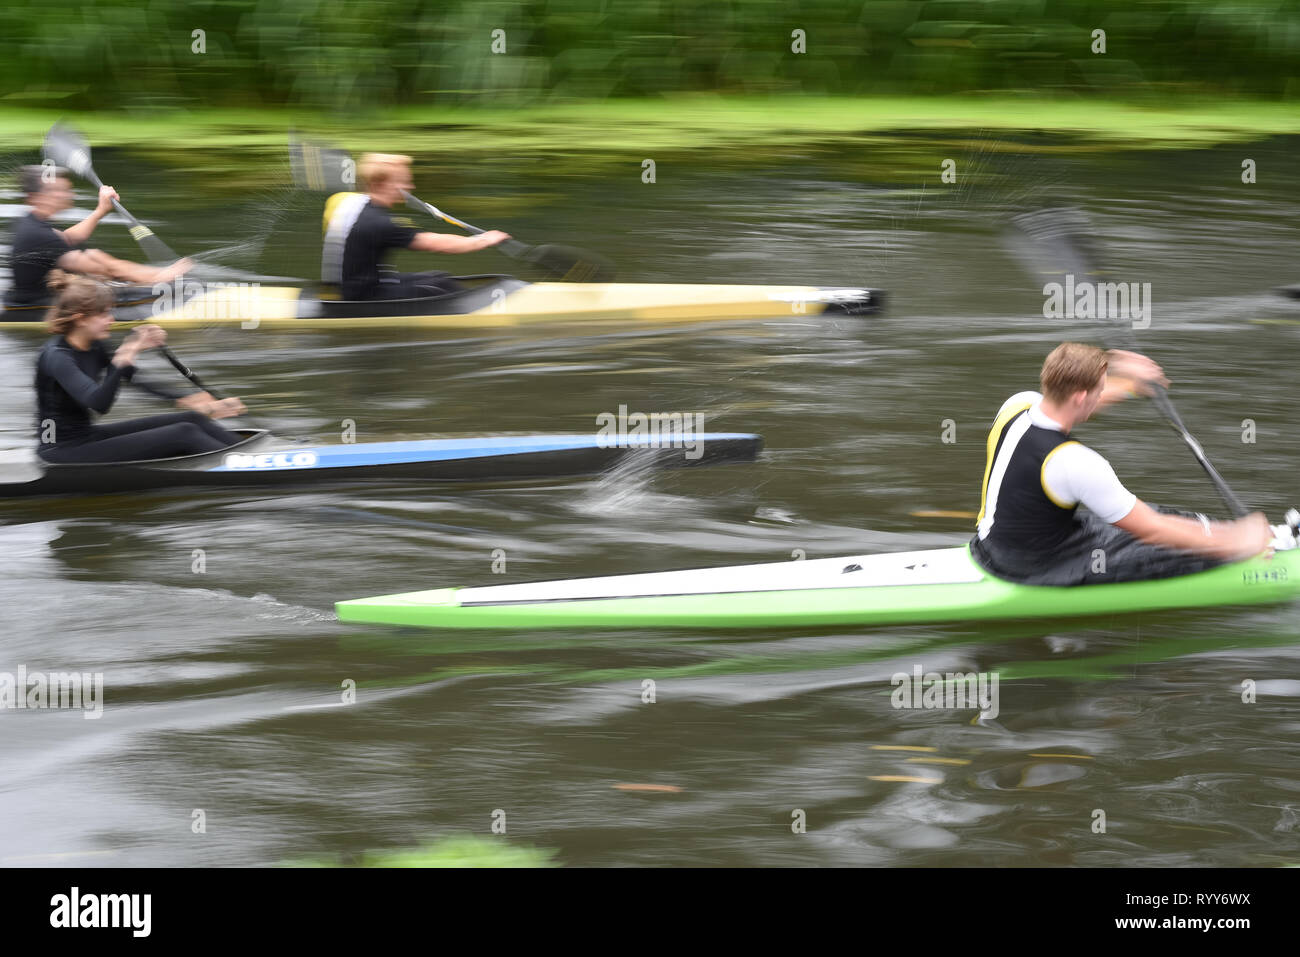 CHELMSFORD, ESSEX/ENGLAND - 18TH AUGUST 2018 - Rowers row their boats on the River Chelmer using the local waterways as part of their watersport activ - Stock Image